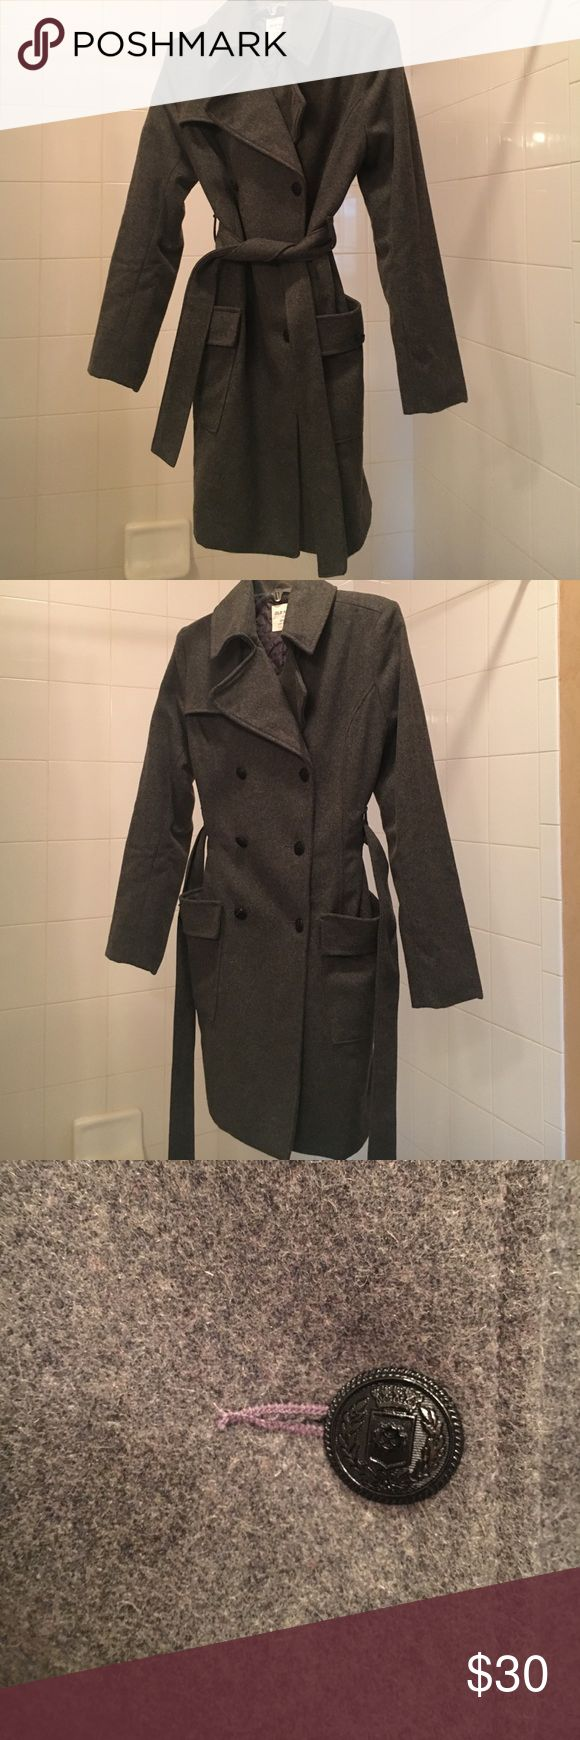 Old Navy long pea coat This Old Navy pea coat can be worn casually or formally. It looks nice with dress pants or a dress for cooler evenings. It has two deep pockets in the front. It was worn one time and is in excellent condition Old Navy Jackets & Coats Pea Coats